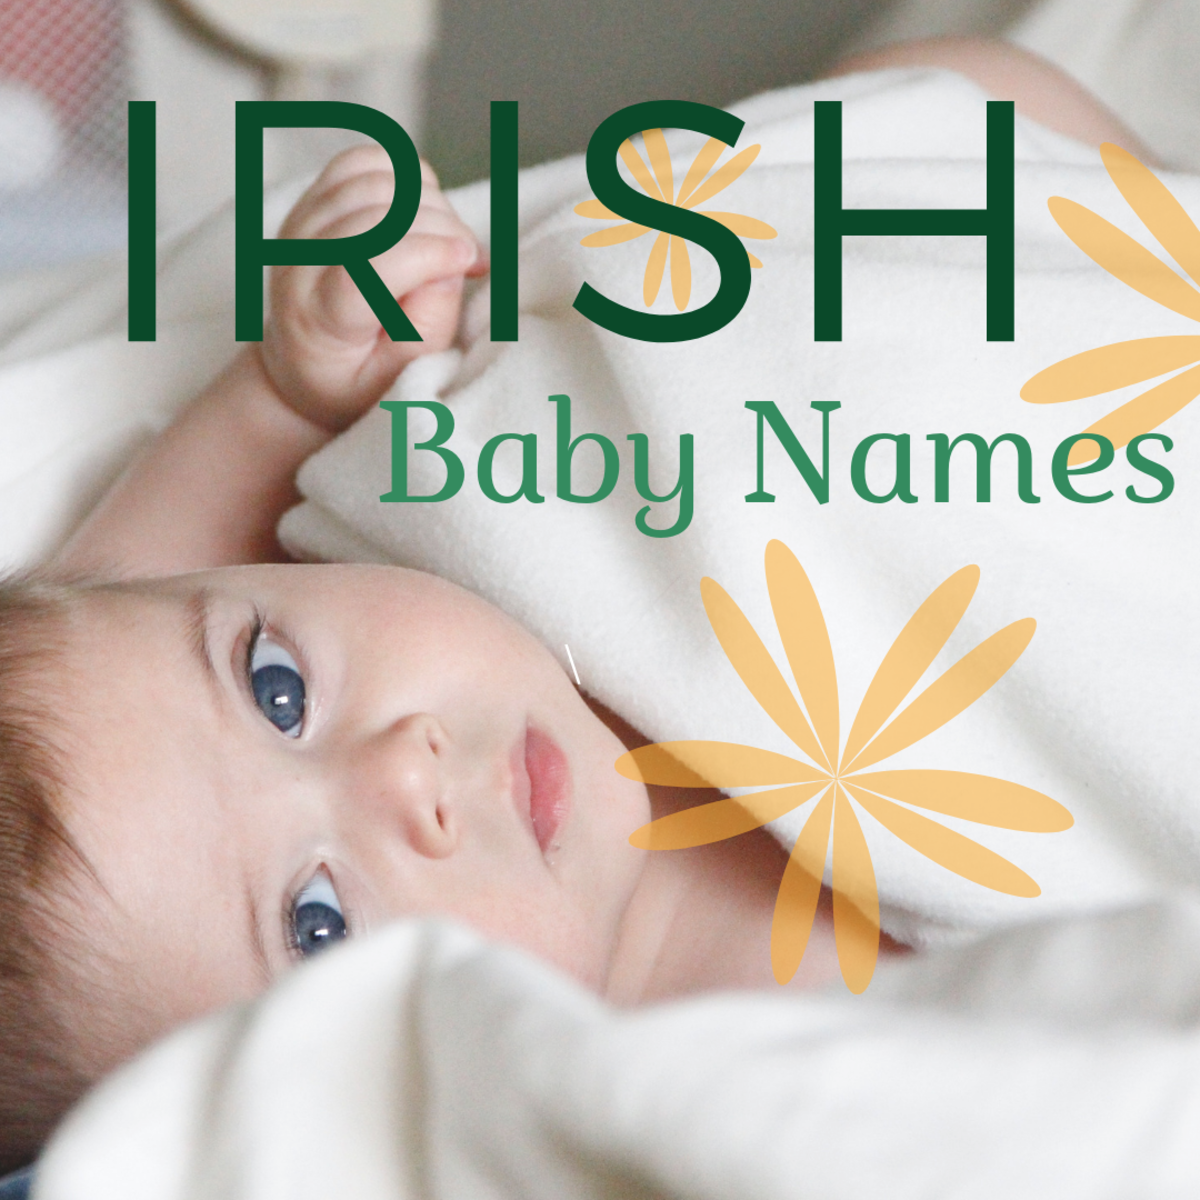 200+ Irish Baby Names and Meanings for Boys and Girls